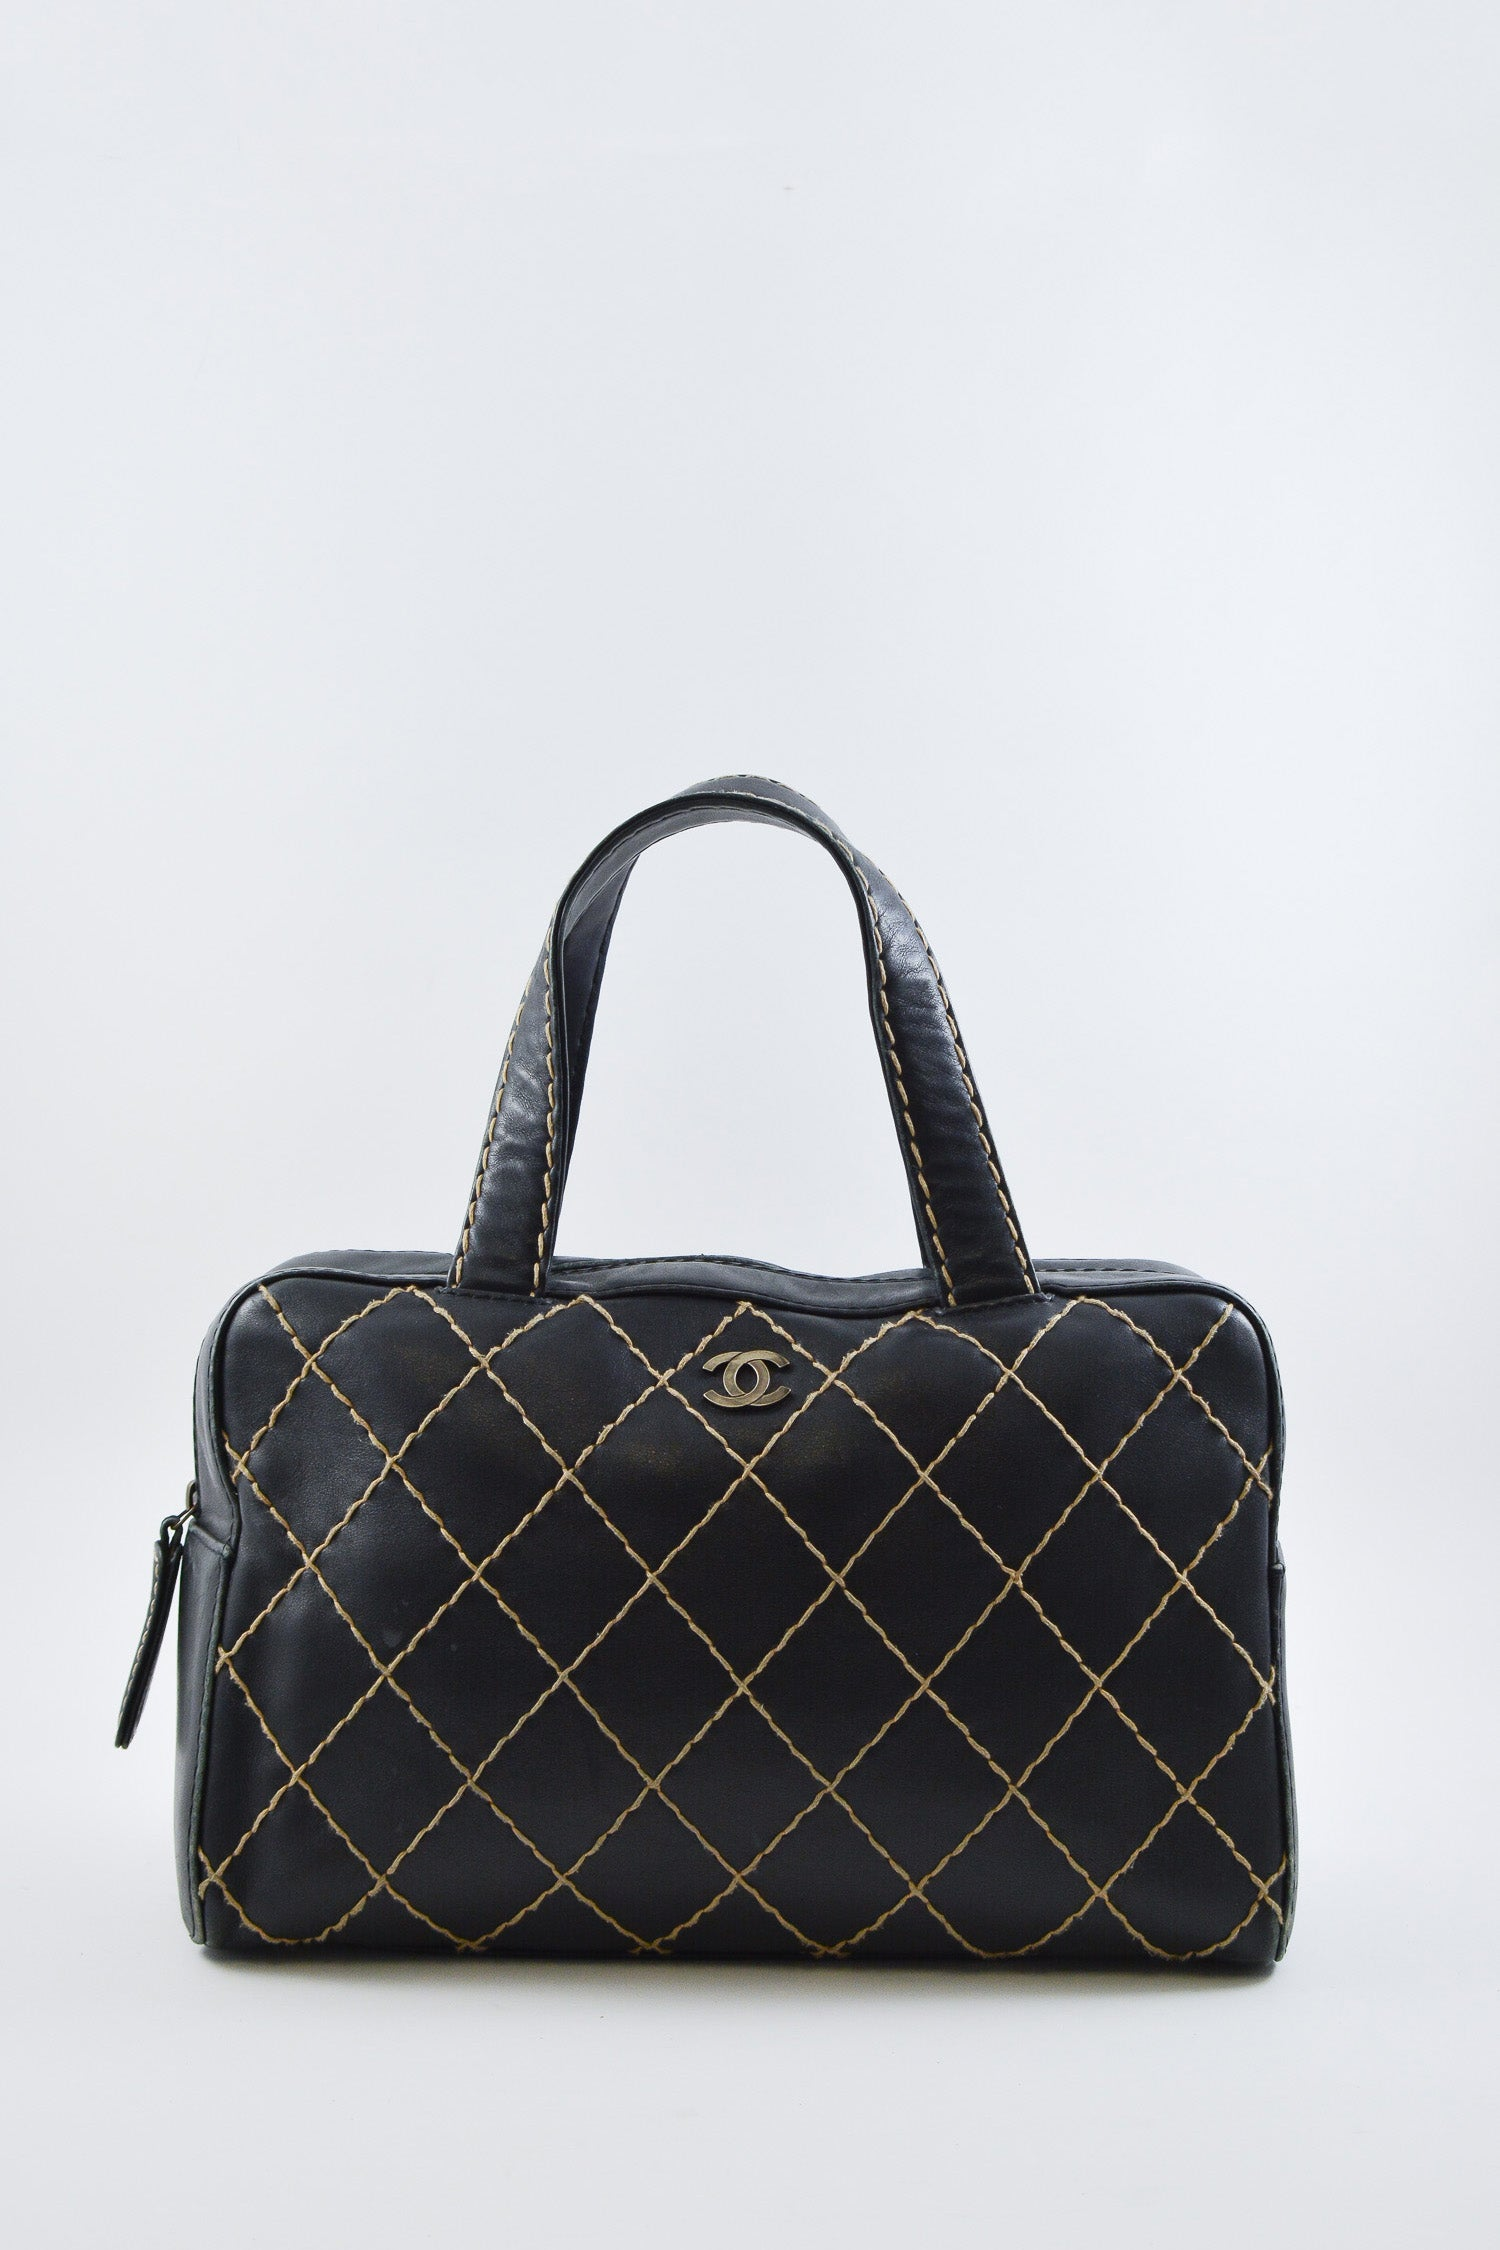 Chanel Black Large Quilted Camera Bag